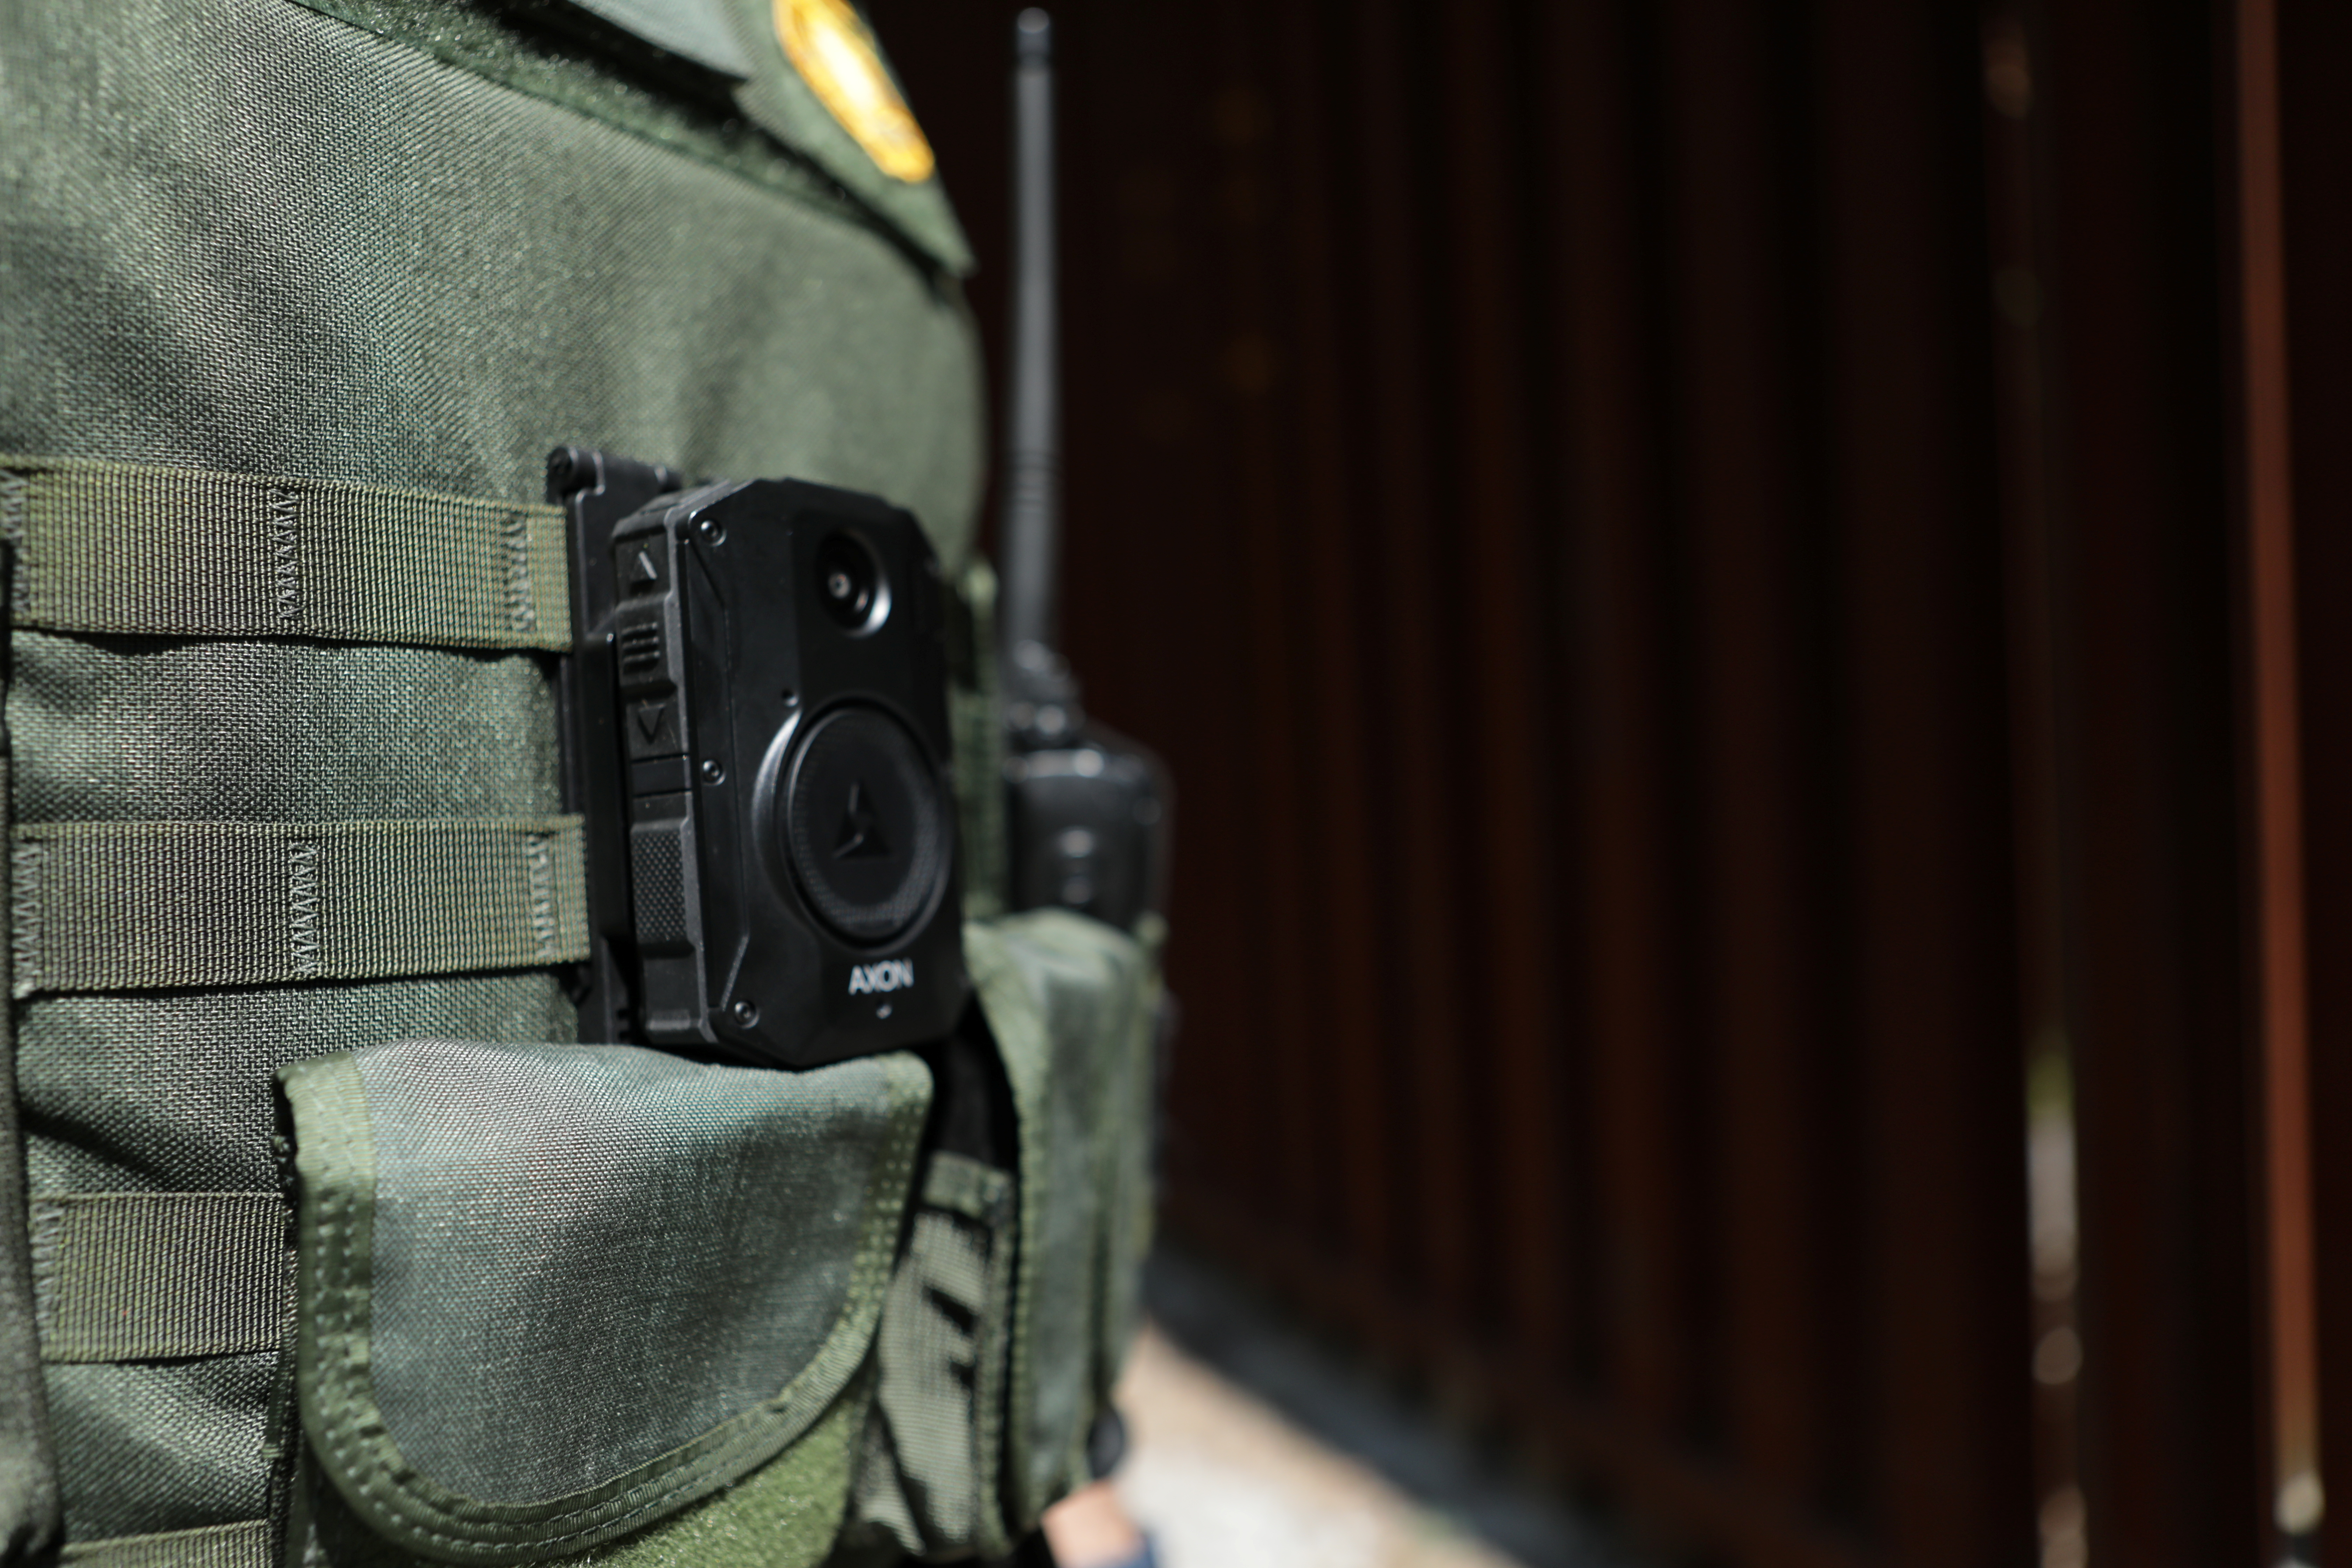 A CBP border agent wears a body camera in this undated handout photo as the United States will require thousands of border agents to wear body cameras, according to three officials and government documents.   CBP/Handout via REUTERS